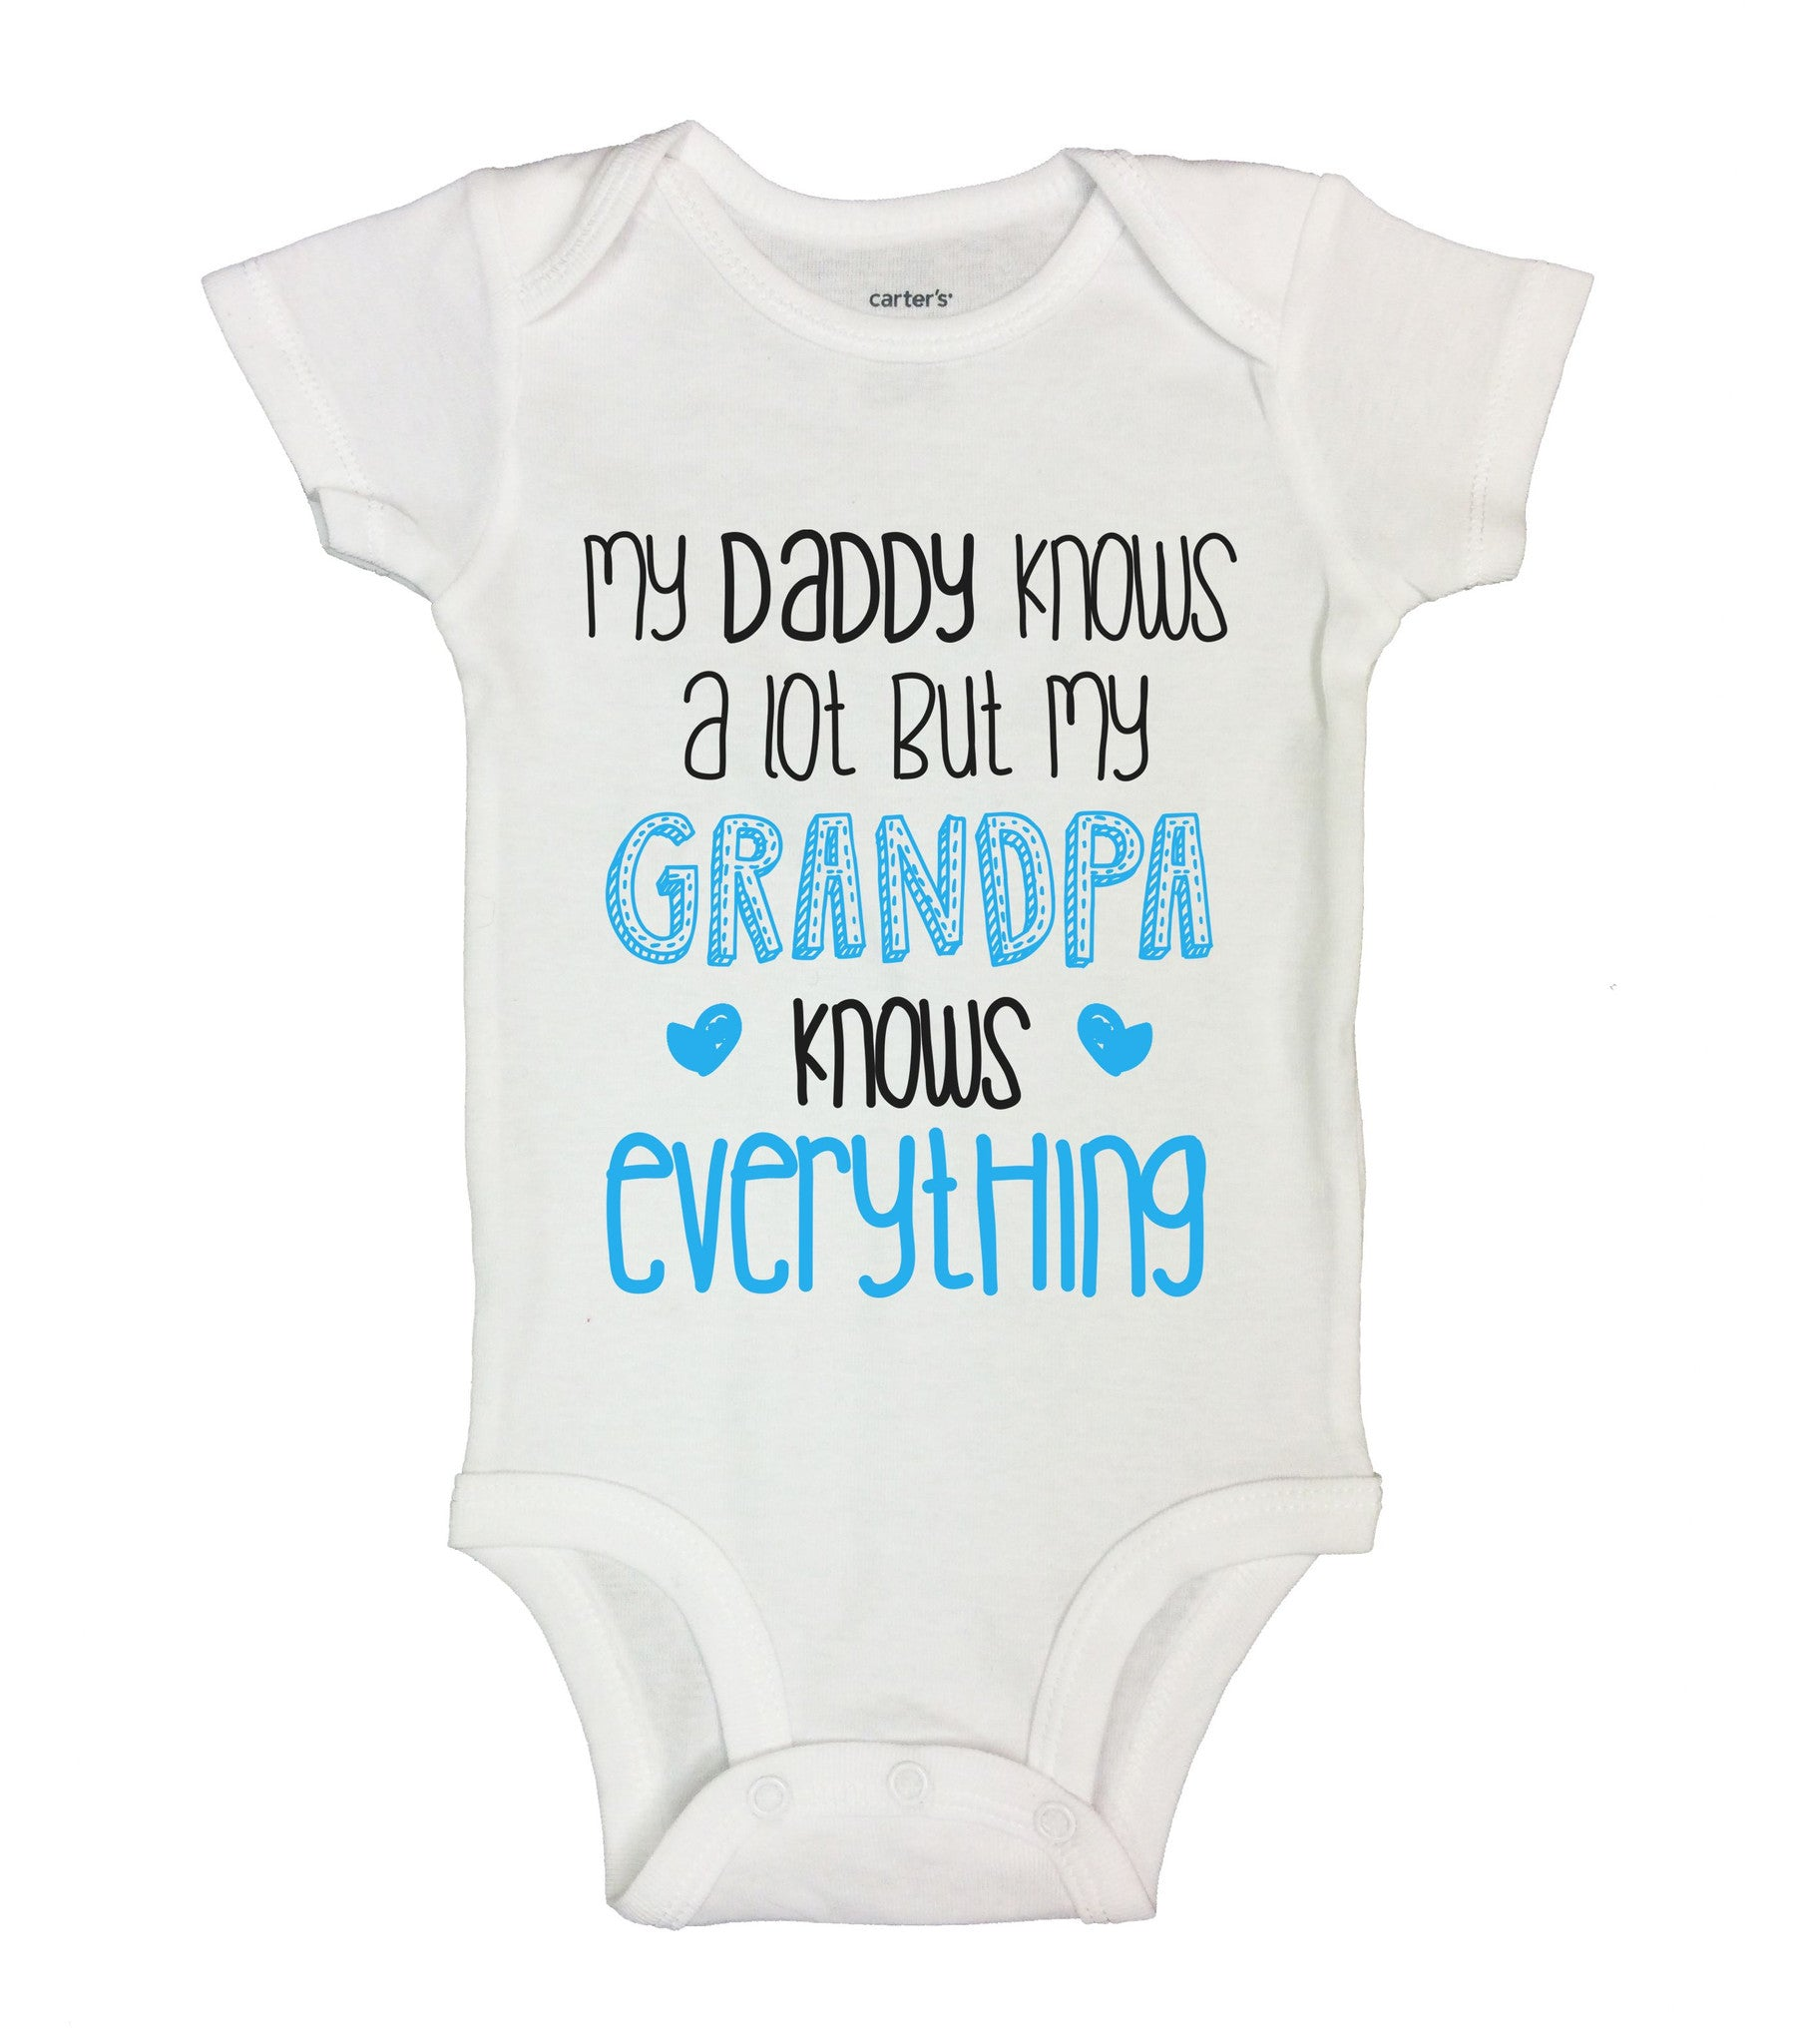 My Daddy Knows A Lot But My Grandpa Knows Everything Funny Kids Onesie - B142 - Funny Shirts Tank Tops Burnouts and Triblends  - 2